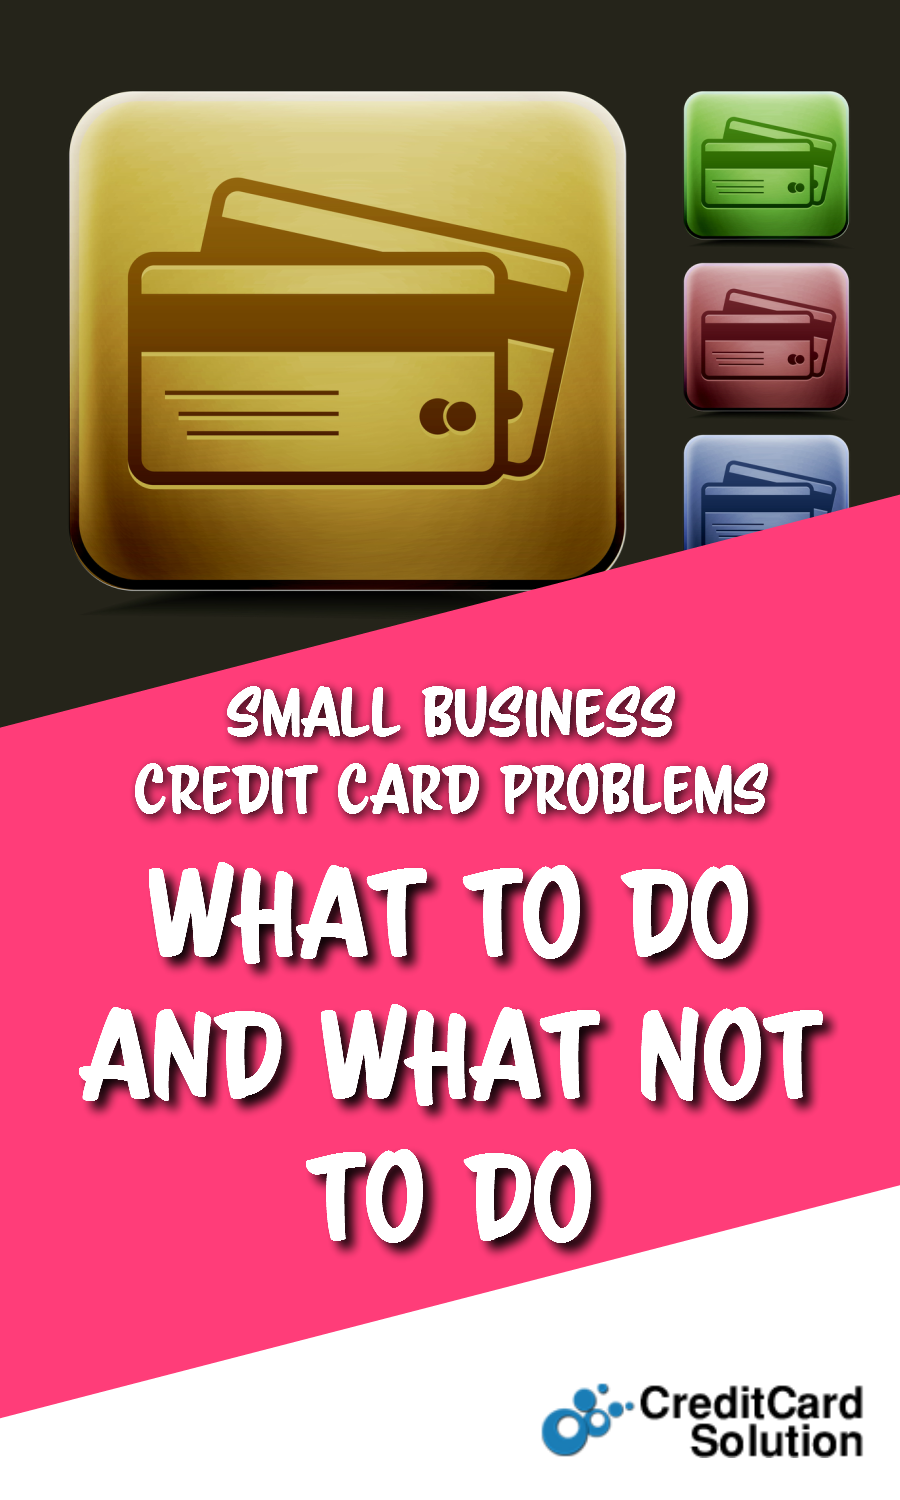 Small Business Credit Card Problems What to Do and What